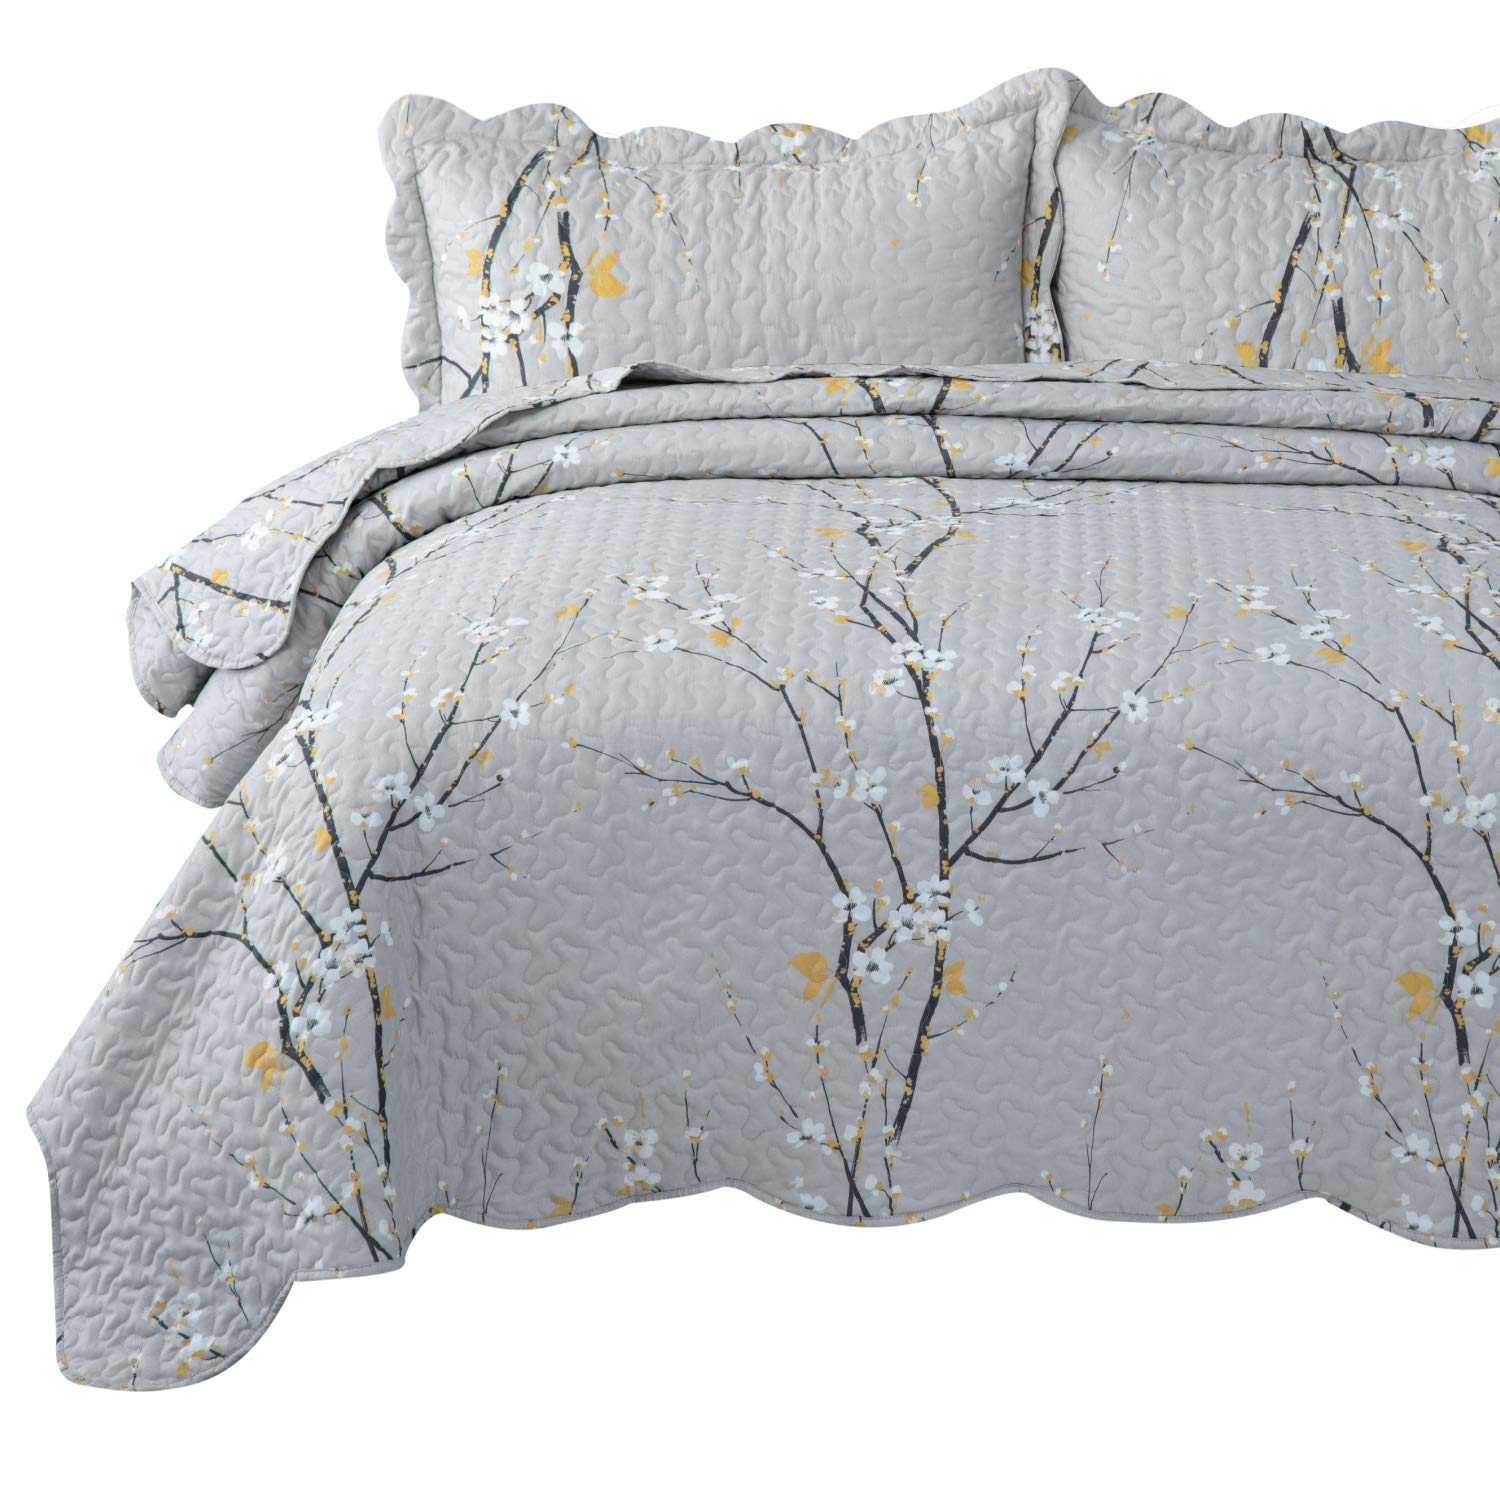 Bedsure Quilt Set Grey Full/Queen Size Plum Blossom (90x96 inches) Bedspread, Lightweight Coverlet Quilt for Spring and Summer, 1 Quilt and 2 Pillow Shams